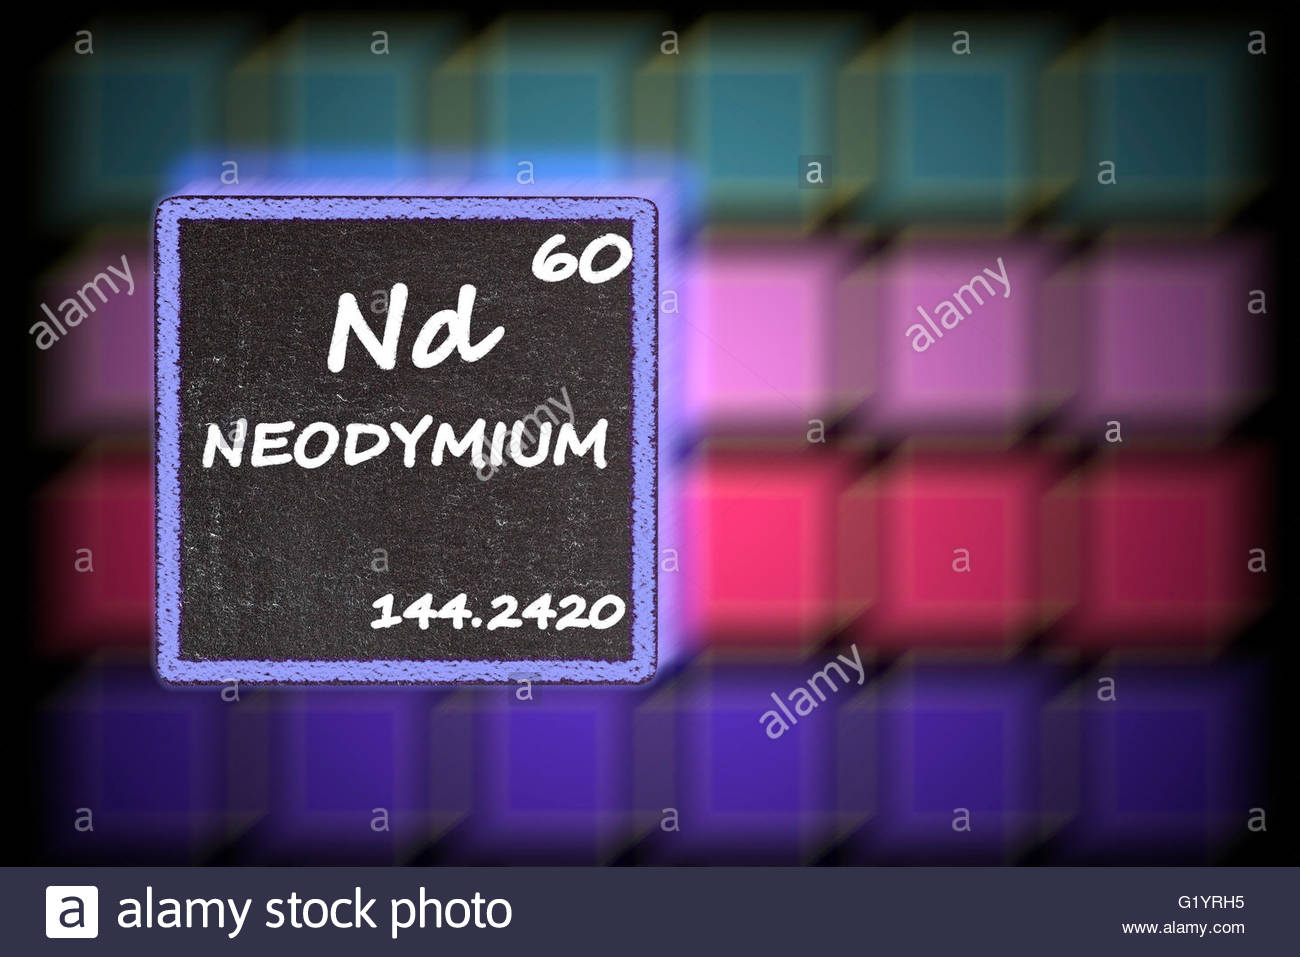 Neodymium details from the periodic table stock photo royalty neodymium details from the periodic table gamestrikefo Choice Image